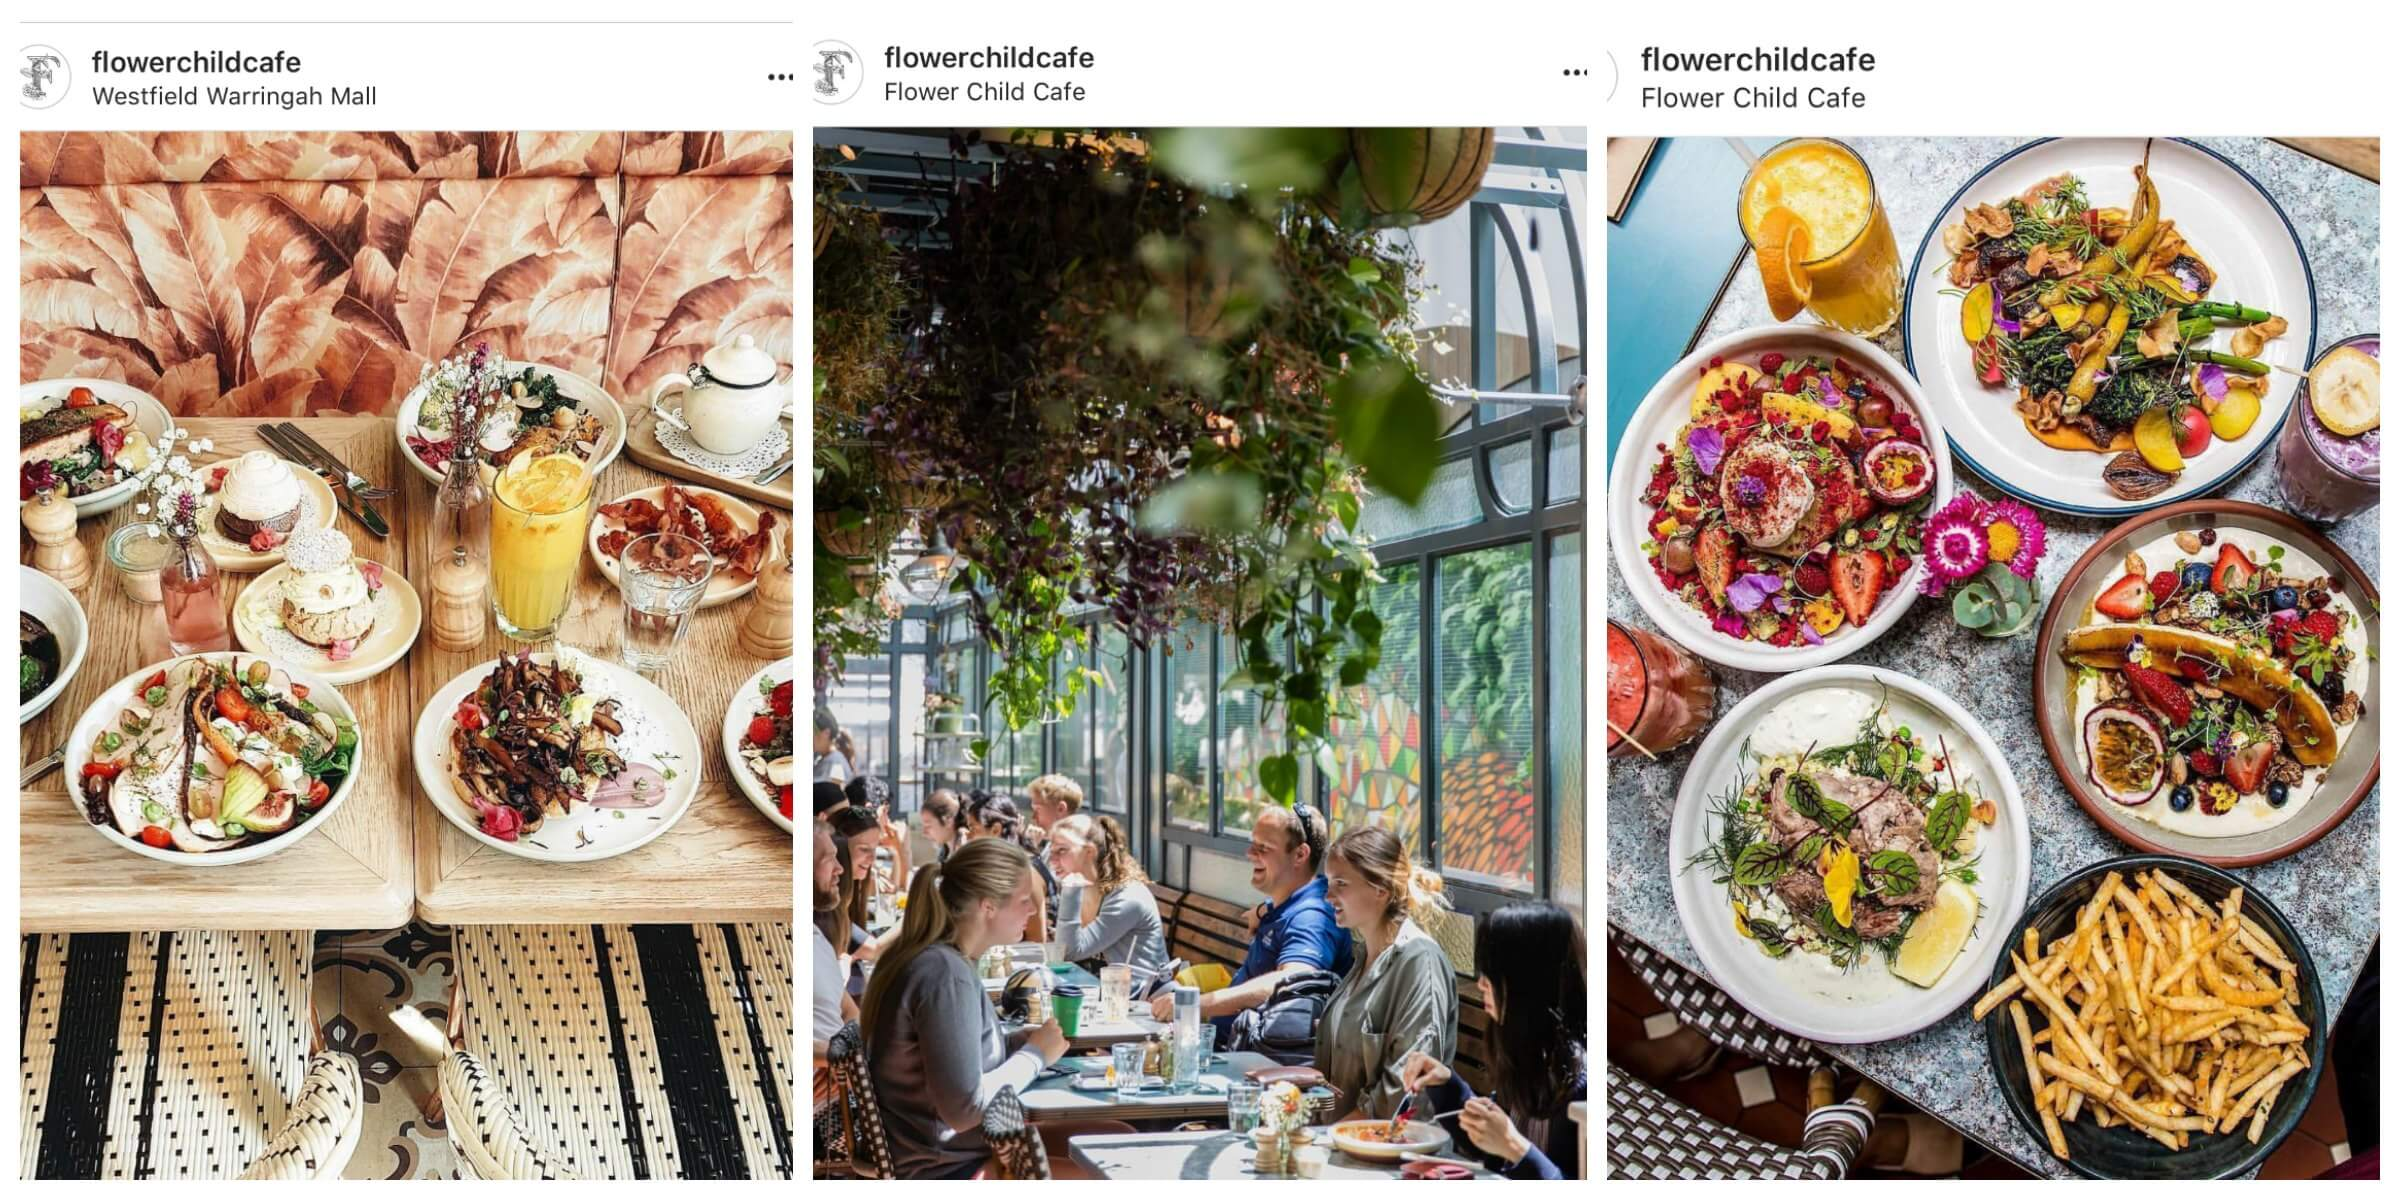 Most Instagrammable Cafes in Sydney, FlowerChild Cafe